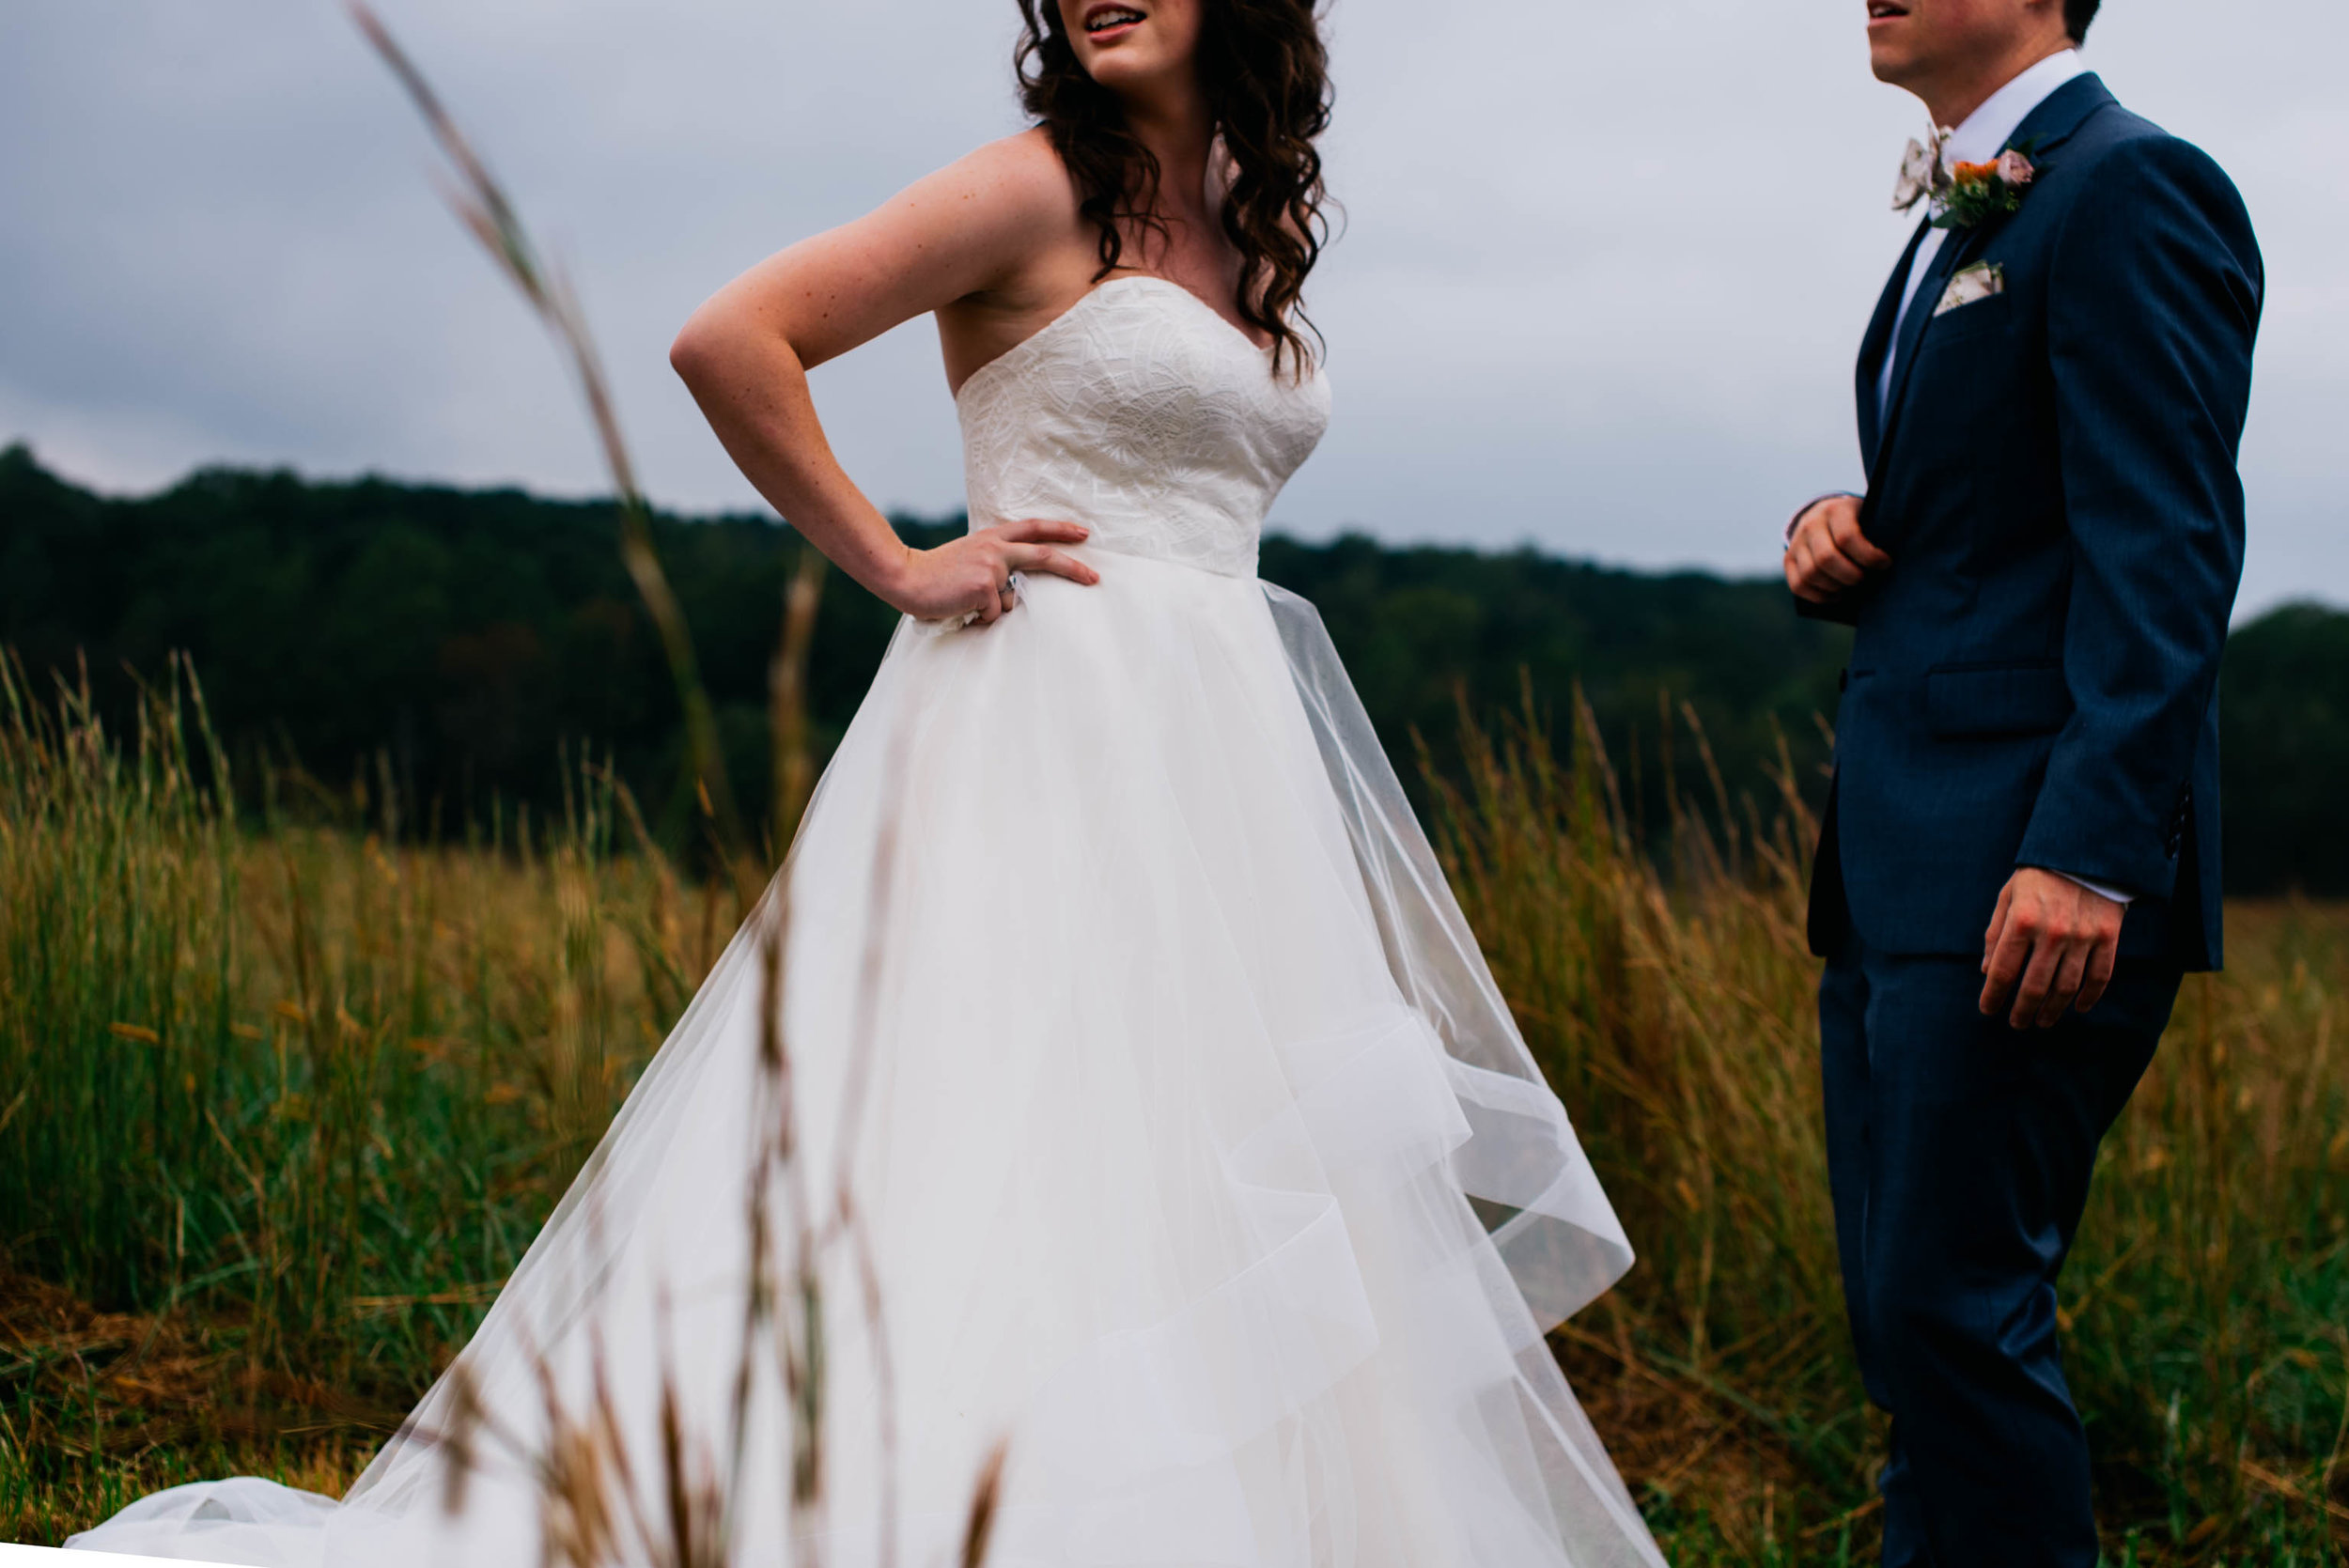 a cropped photo of the bride and groom to show the brides dress and the grooms suit details